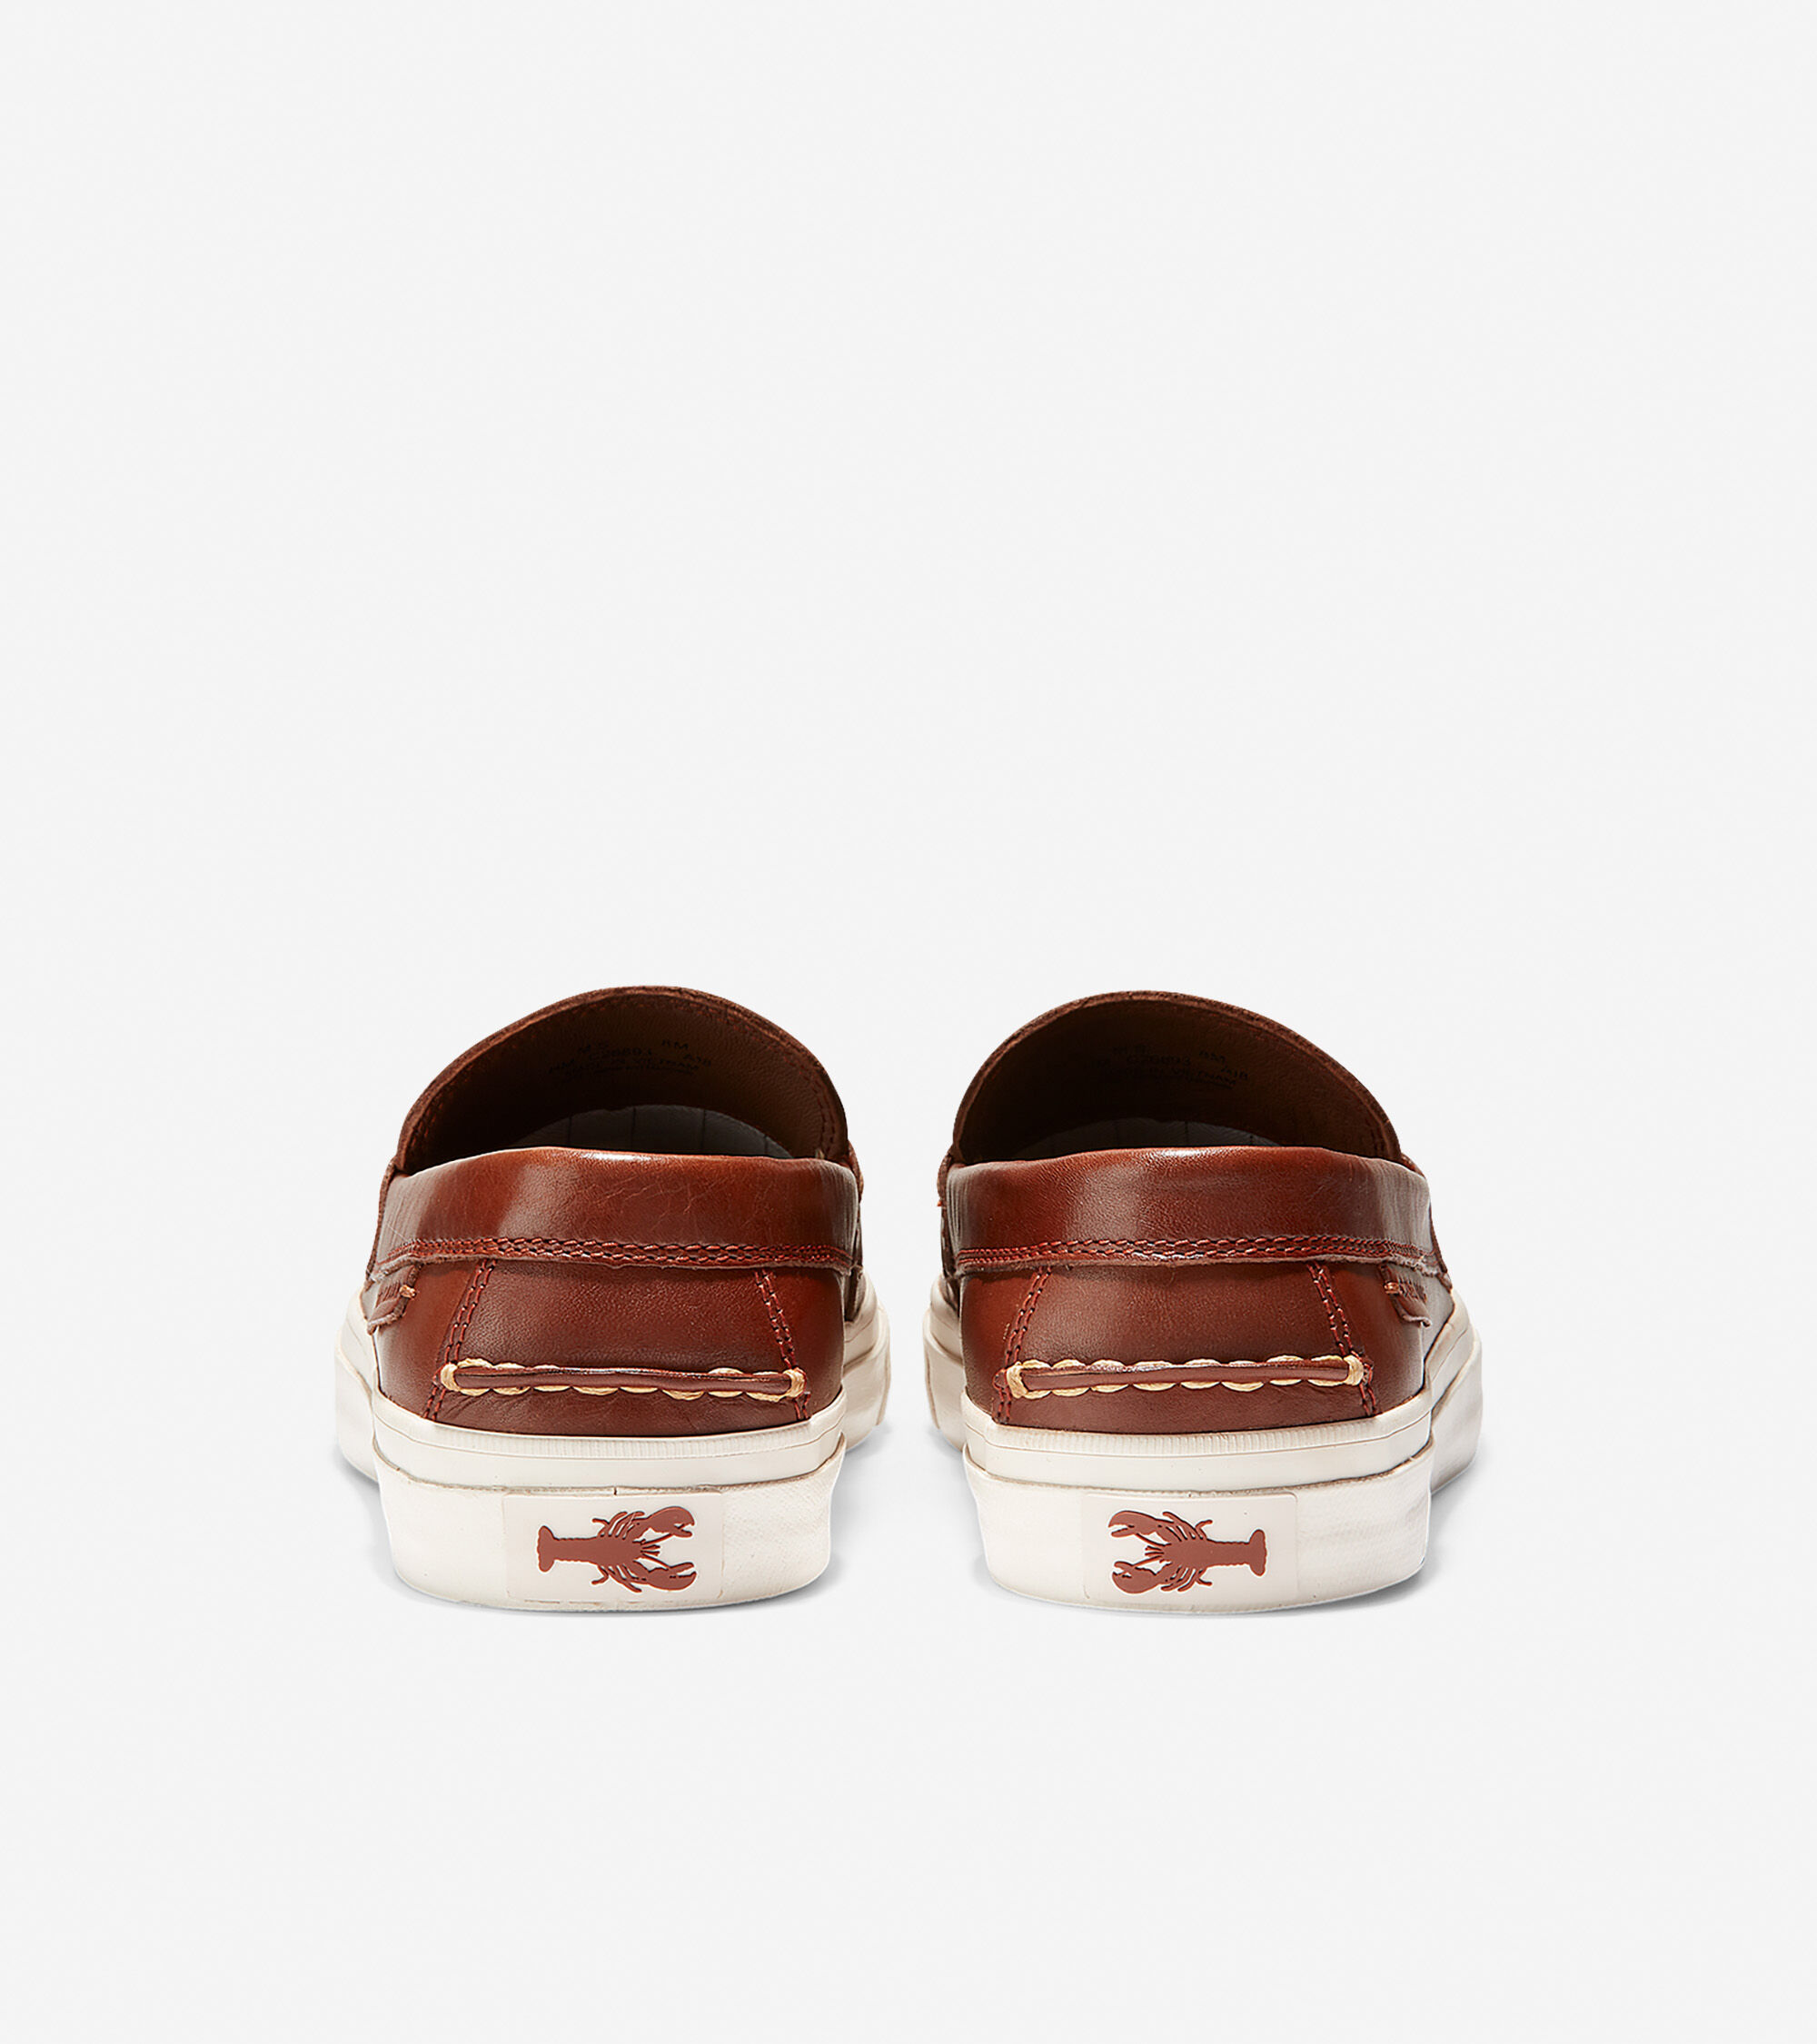 269ff60a530 Men s Pinch Weekender LX Penny Loafers in Woodbury